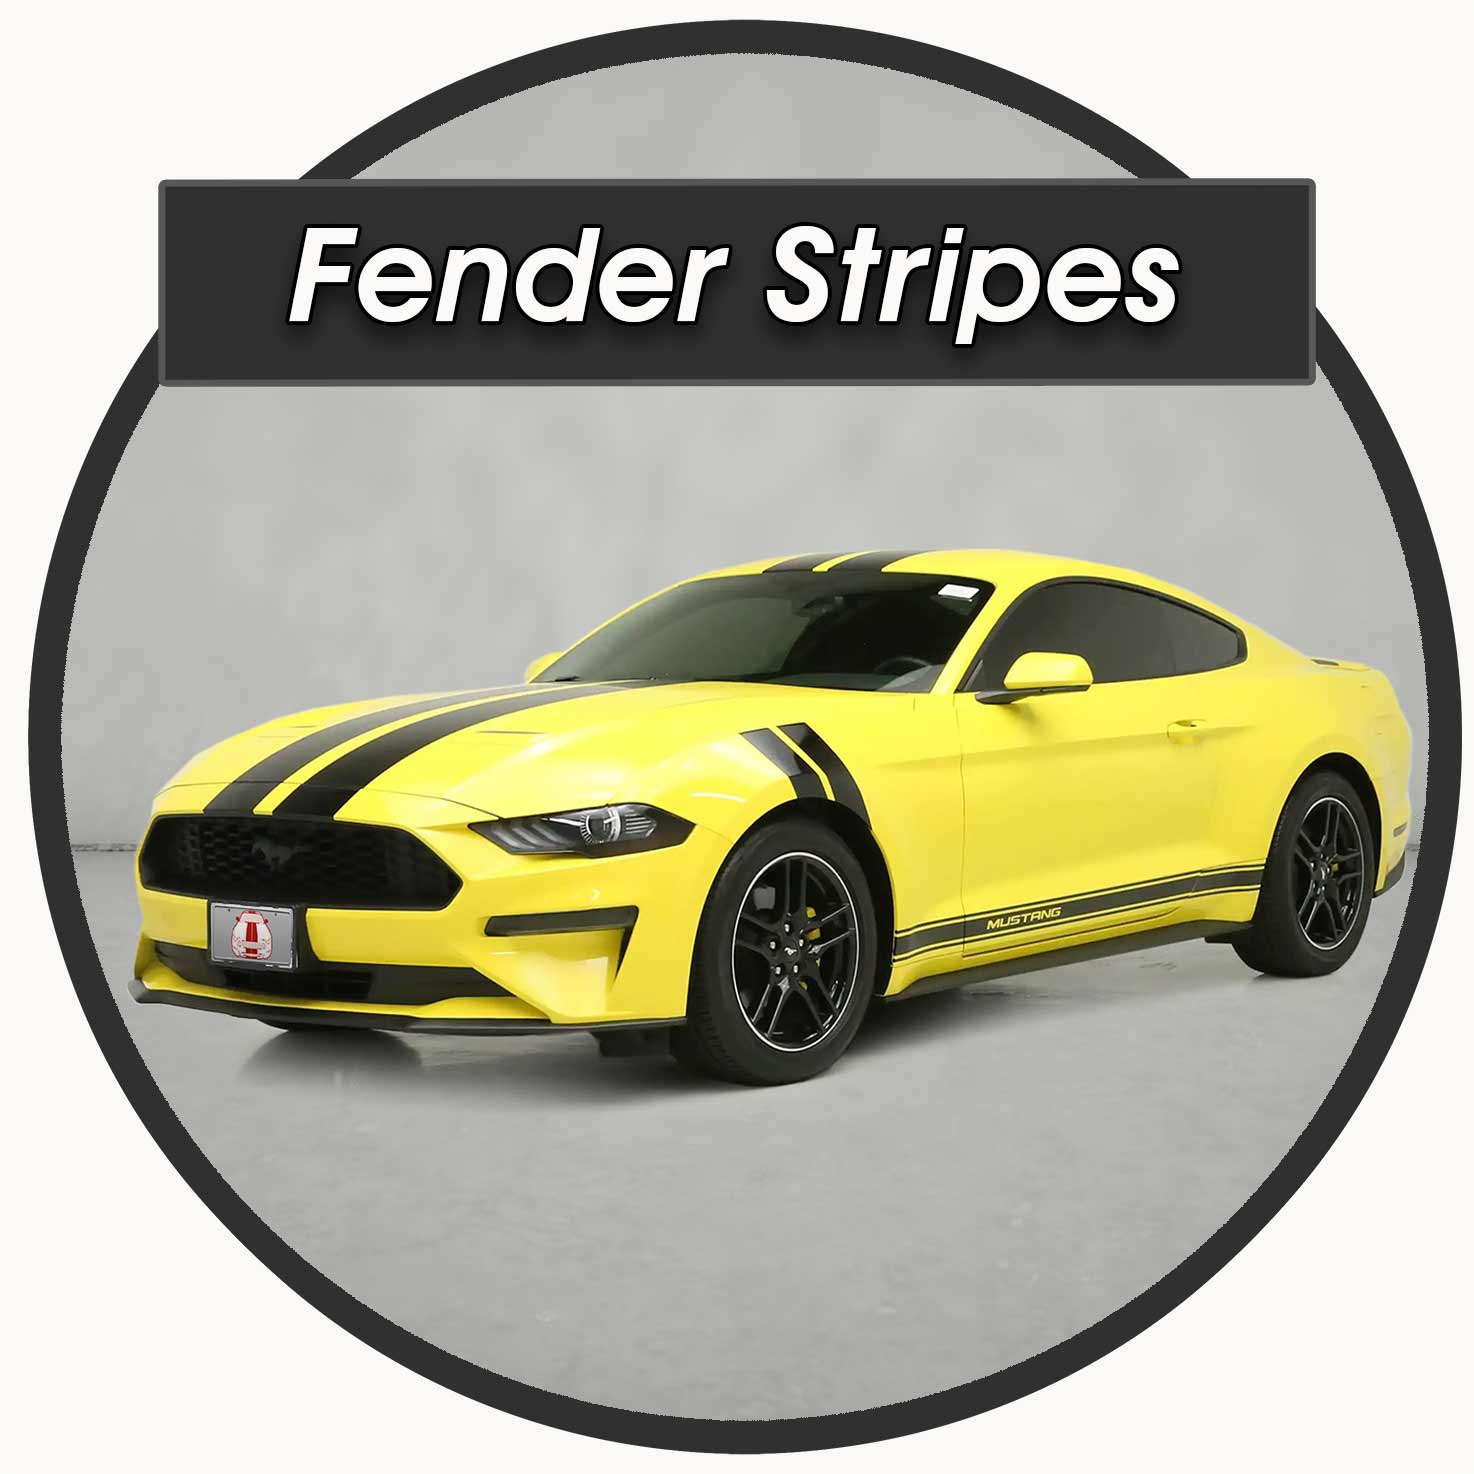 Hash Fender stripes on a yellow mustang for sale